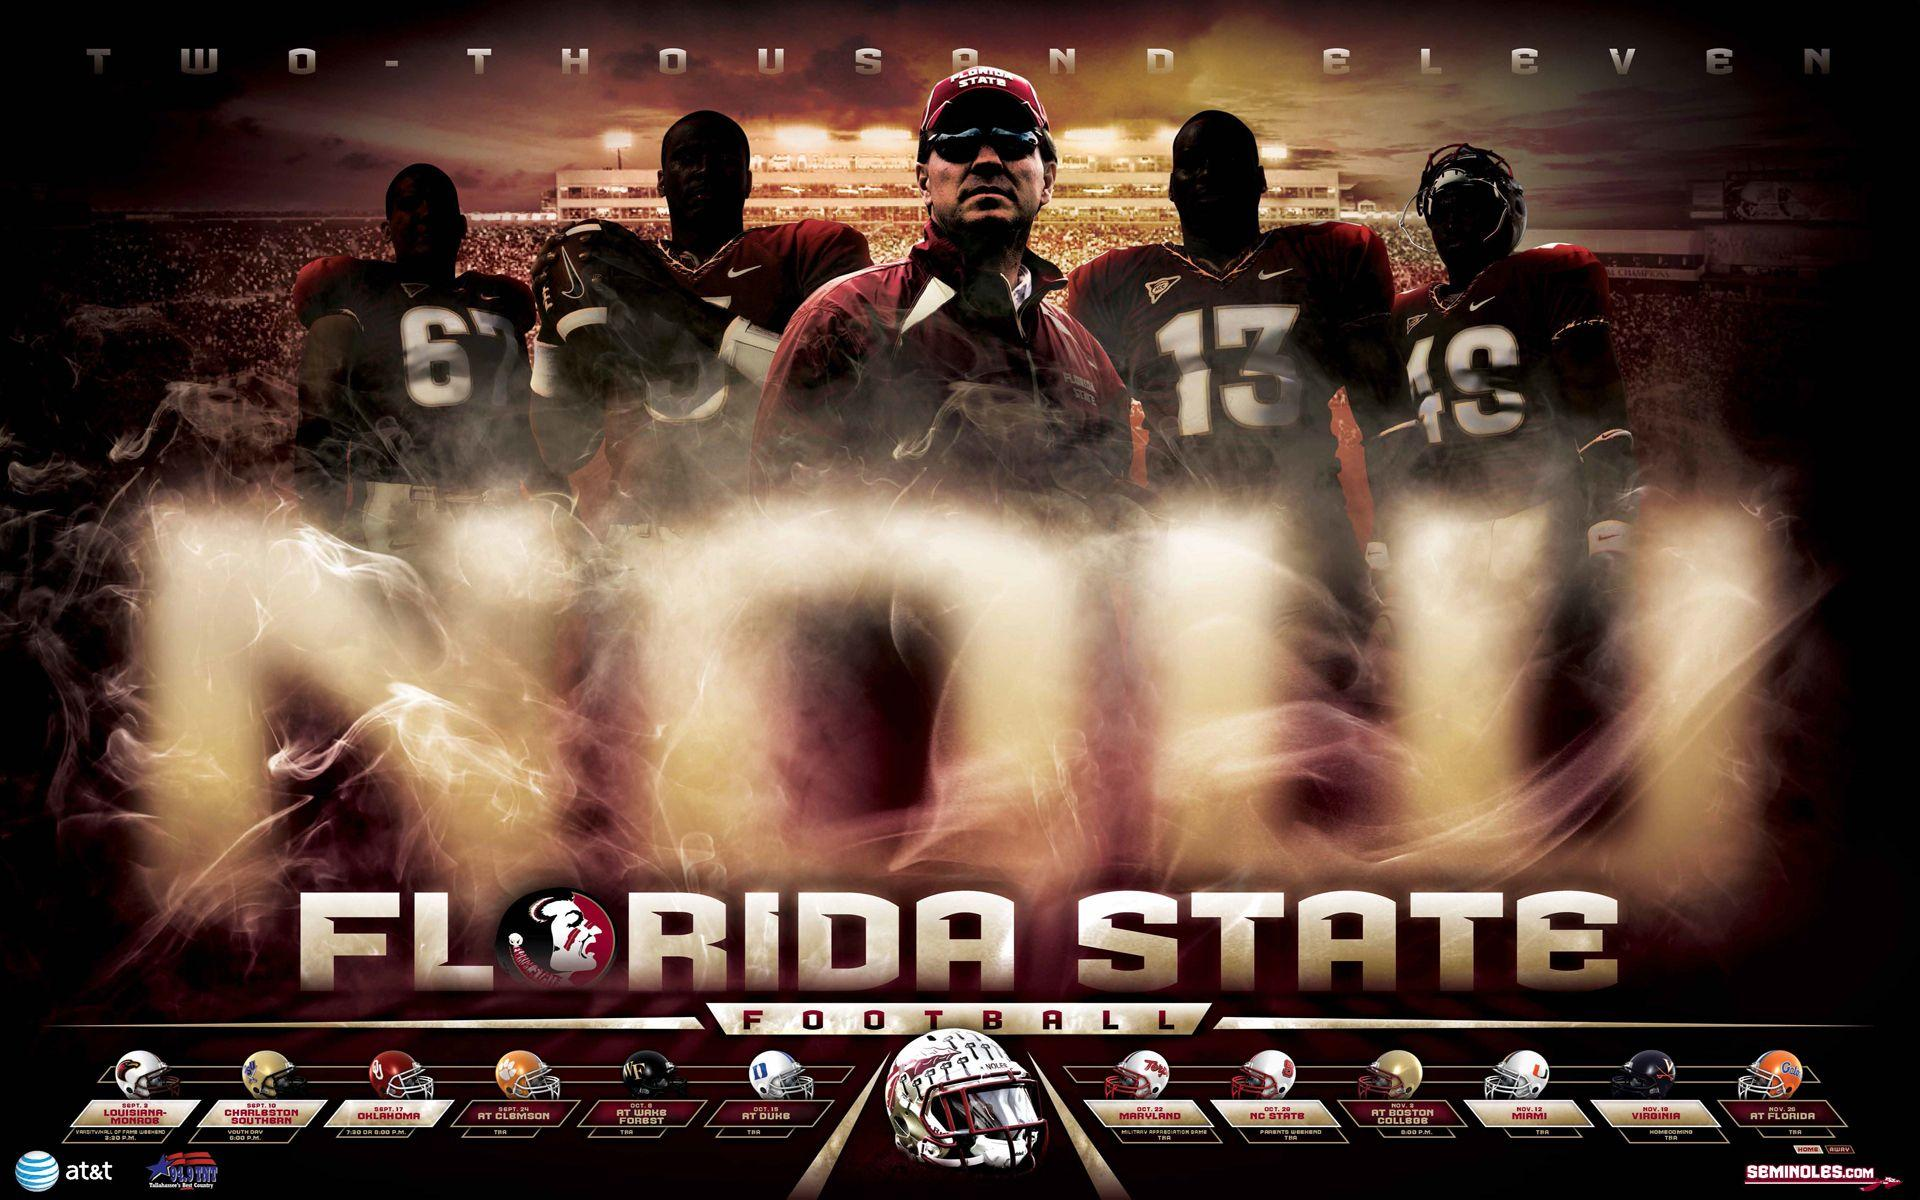 Florida state university wallpapers wallpaper cave for Florida cool